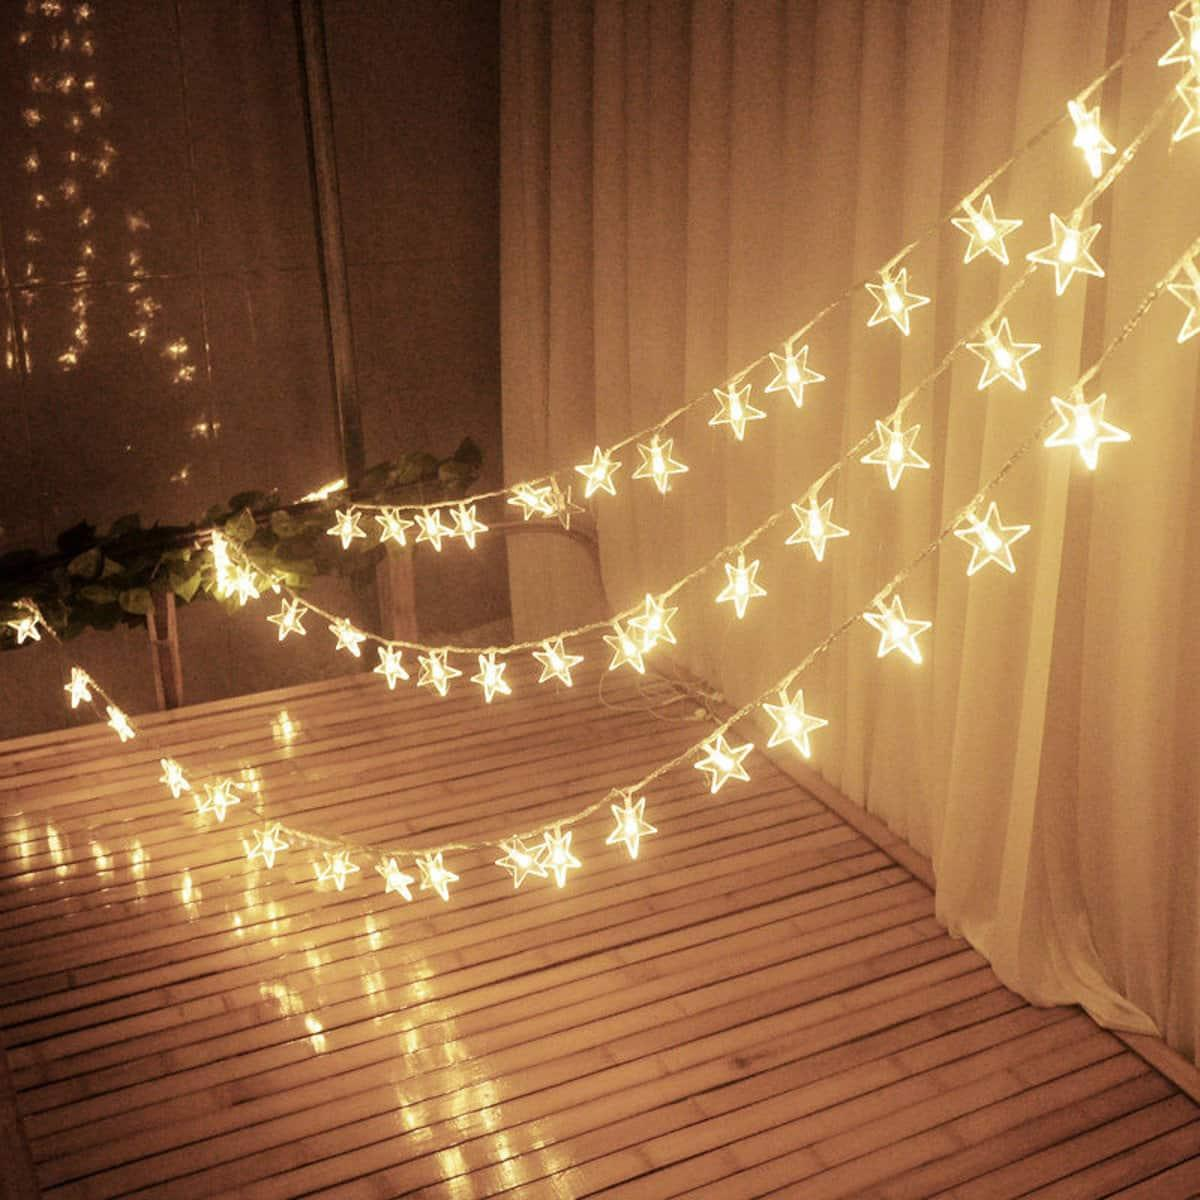 [SG Seller] New 10M 100LED Star String Fairy Lights for Party Home Outdoor Wedding Decorations